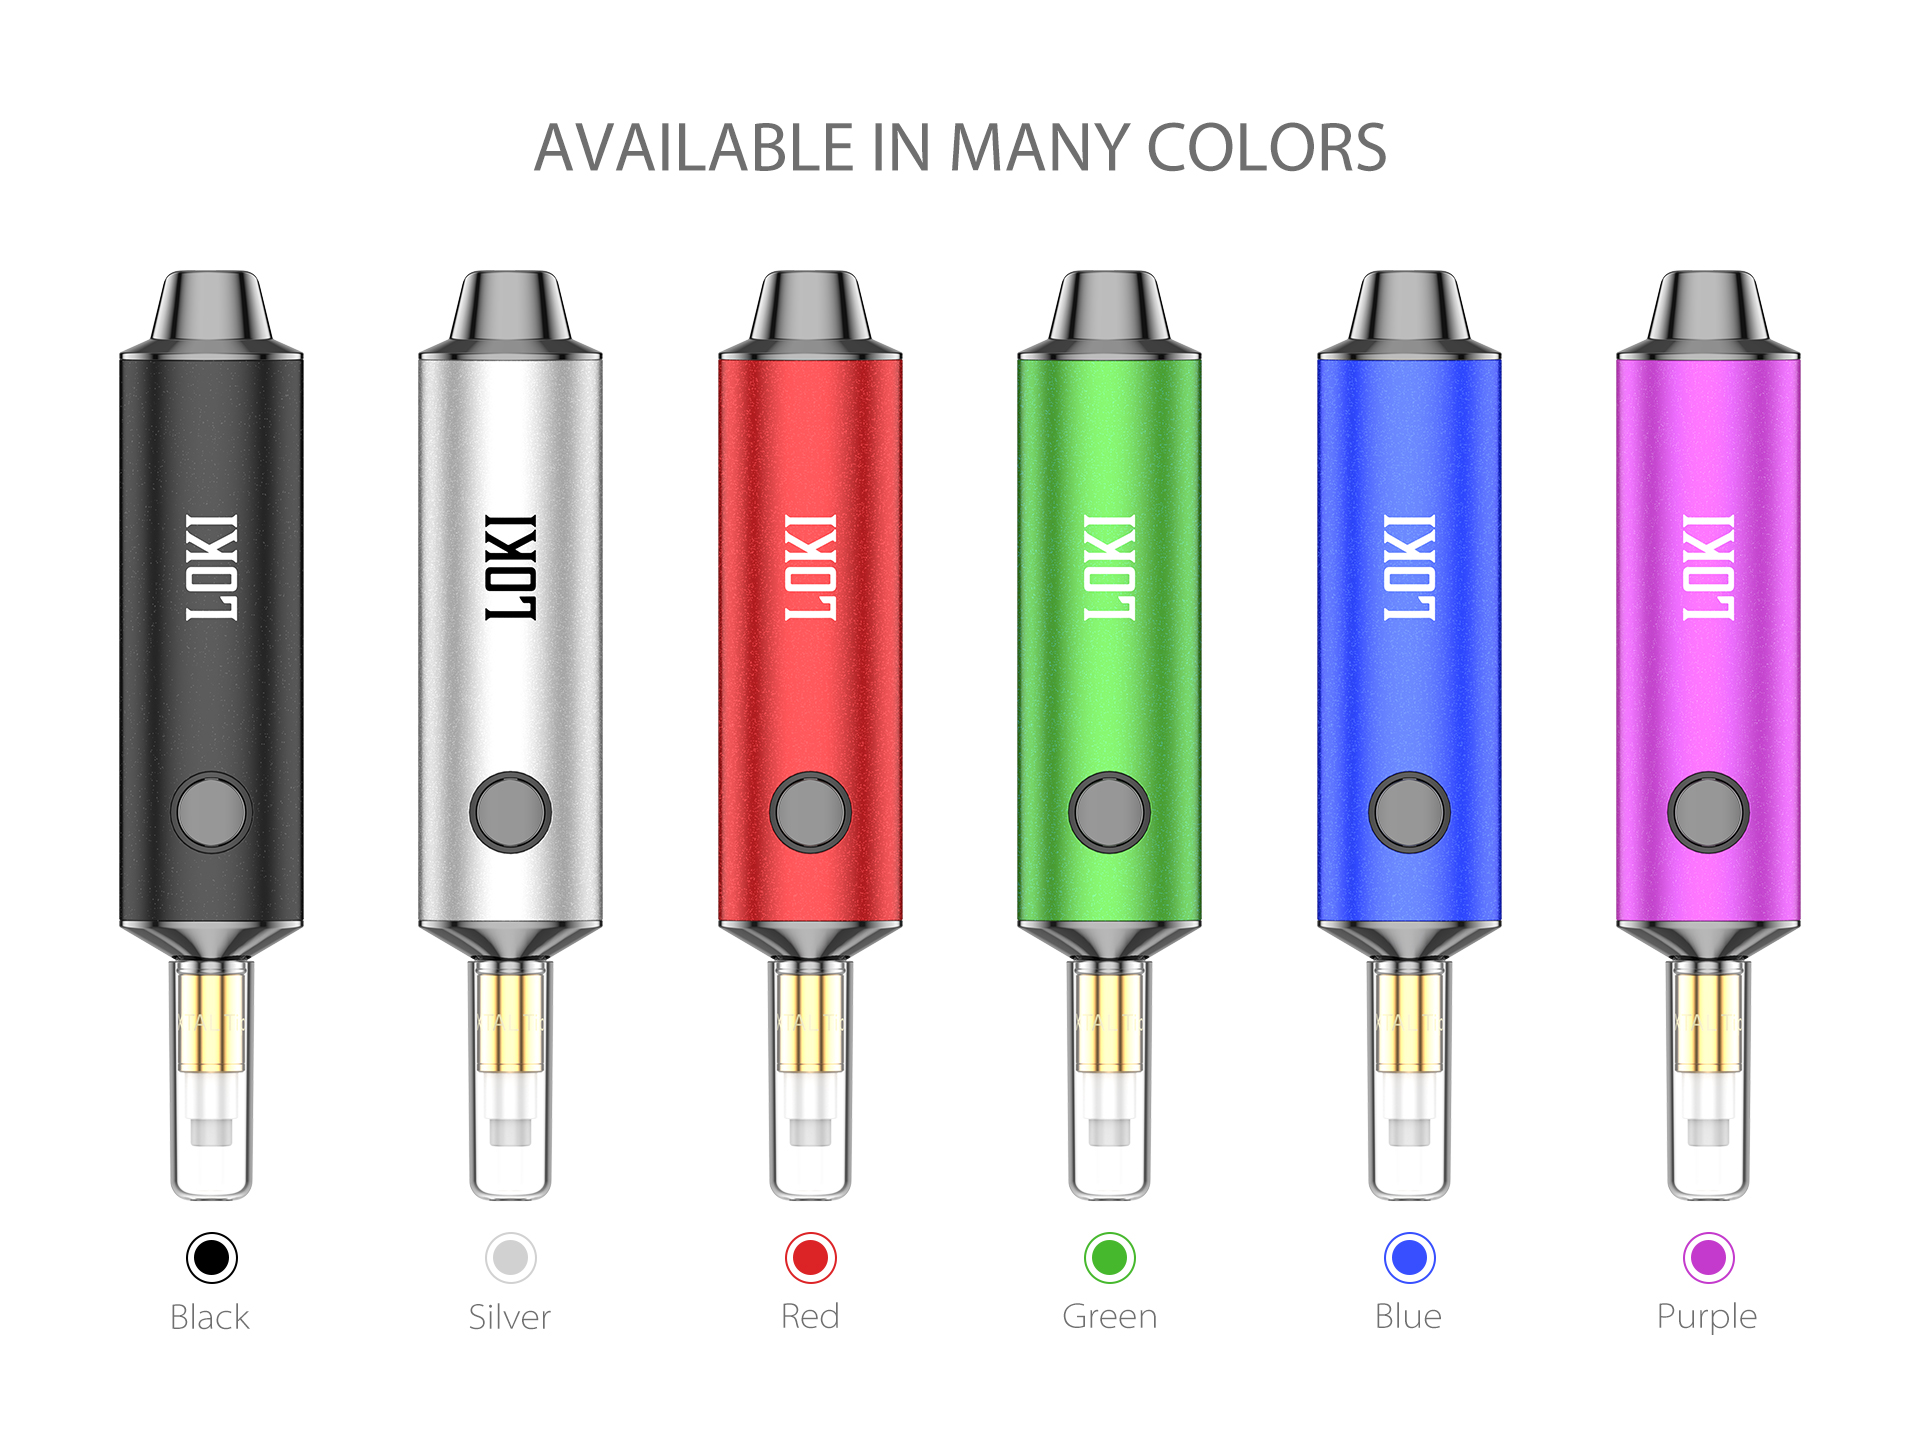 Yocan Loki Portable Vaporizer Pen available in many colors.